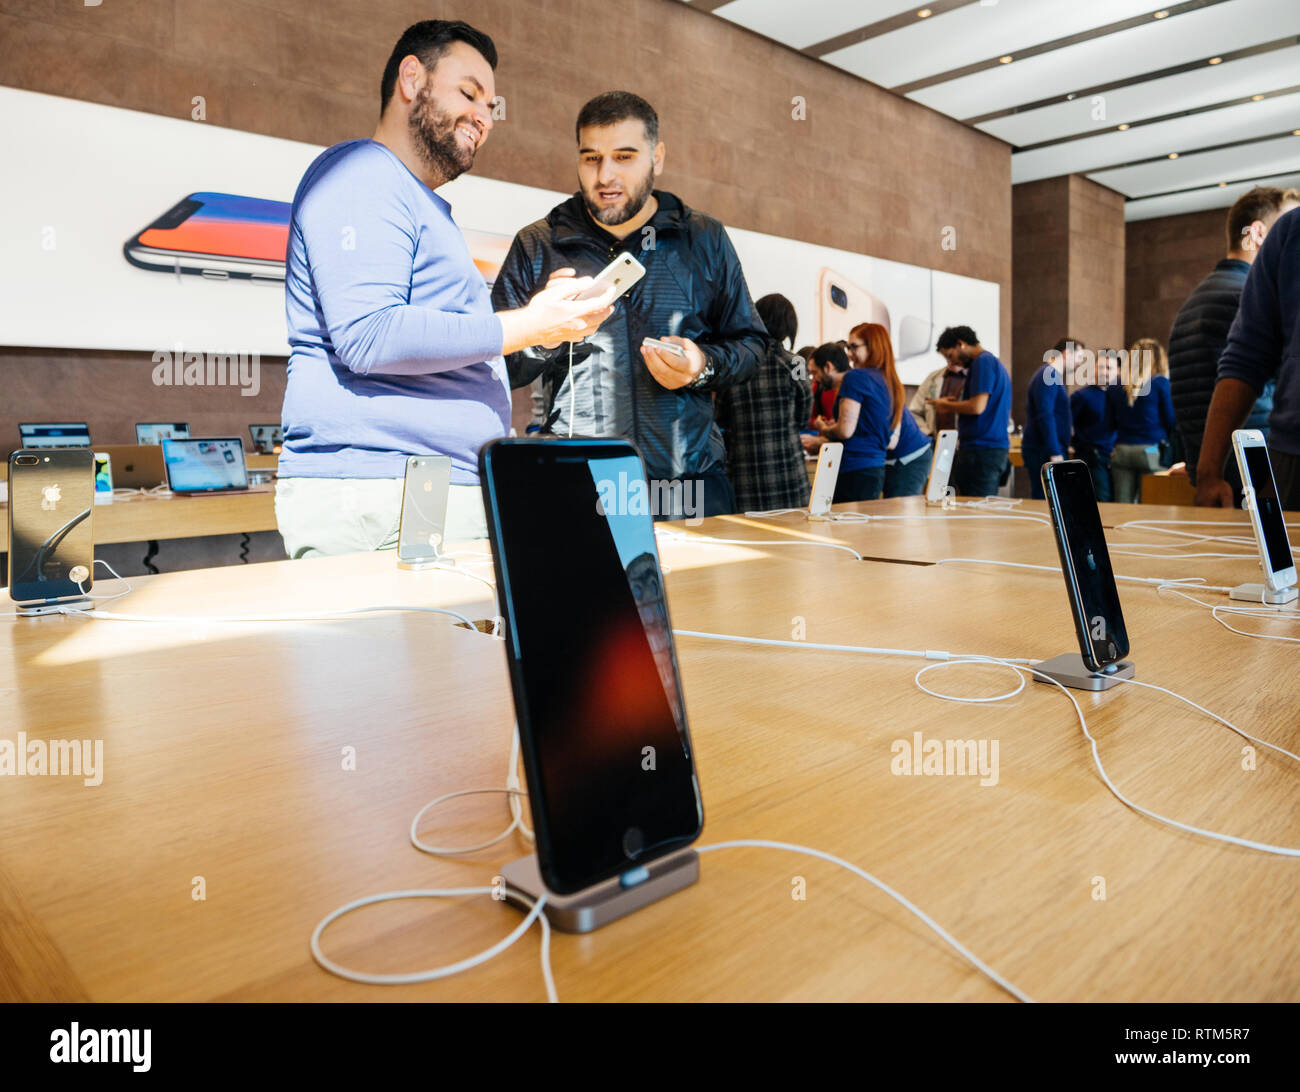 PARIS, FRANCE - SEP 22, 2017: New iPhone 8 and iPhone 8 Plus charging in docking station goes on sale today in Apple Store with middle East ethnicity customers holding admiring the phone Stock Photo